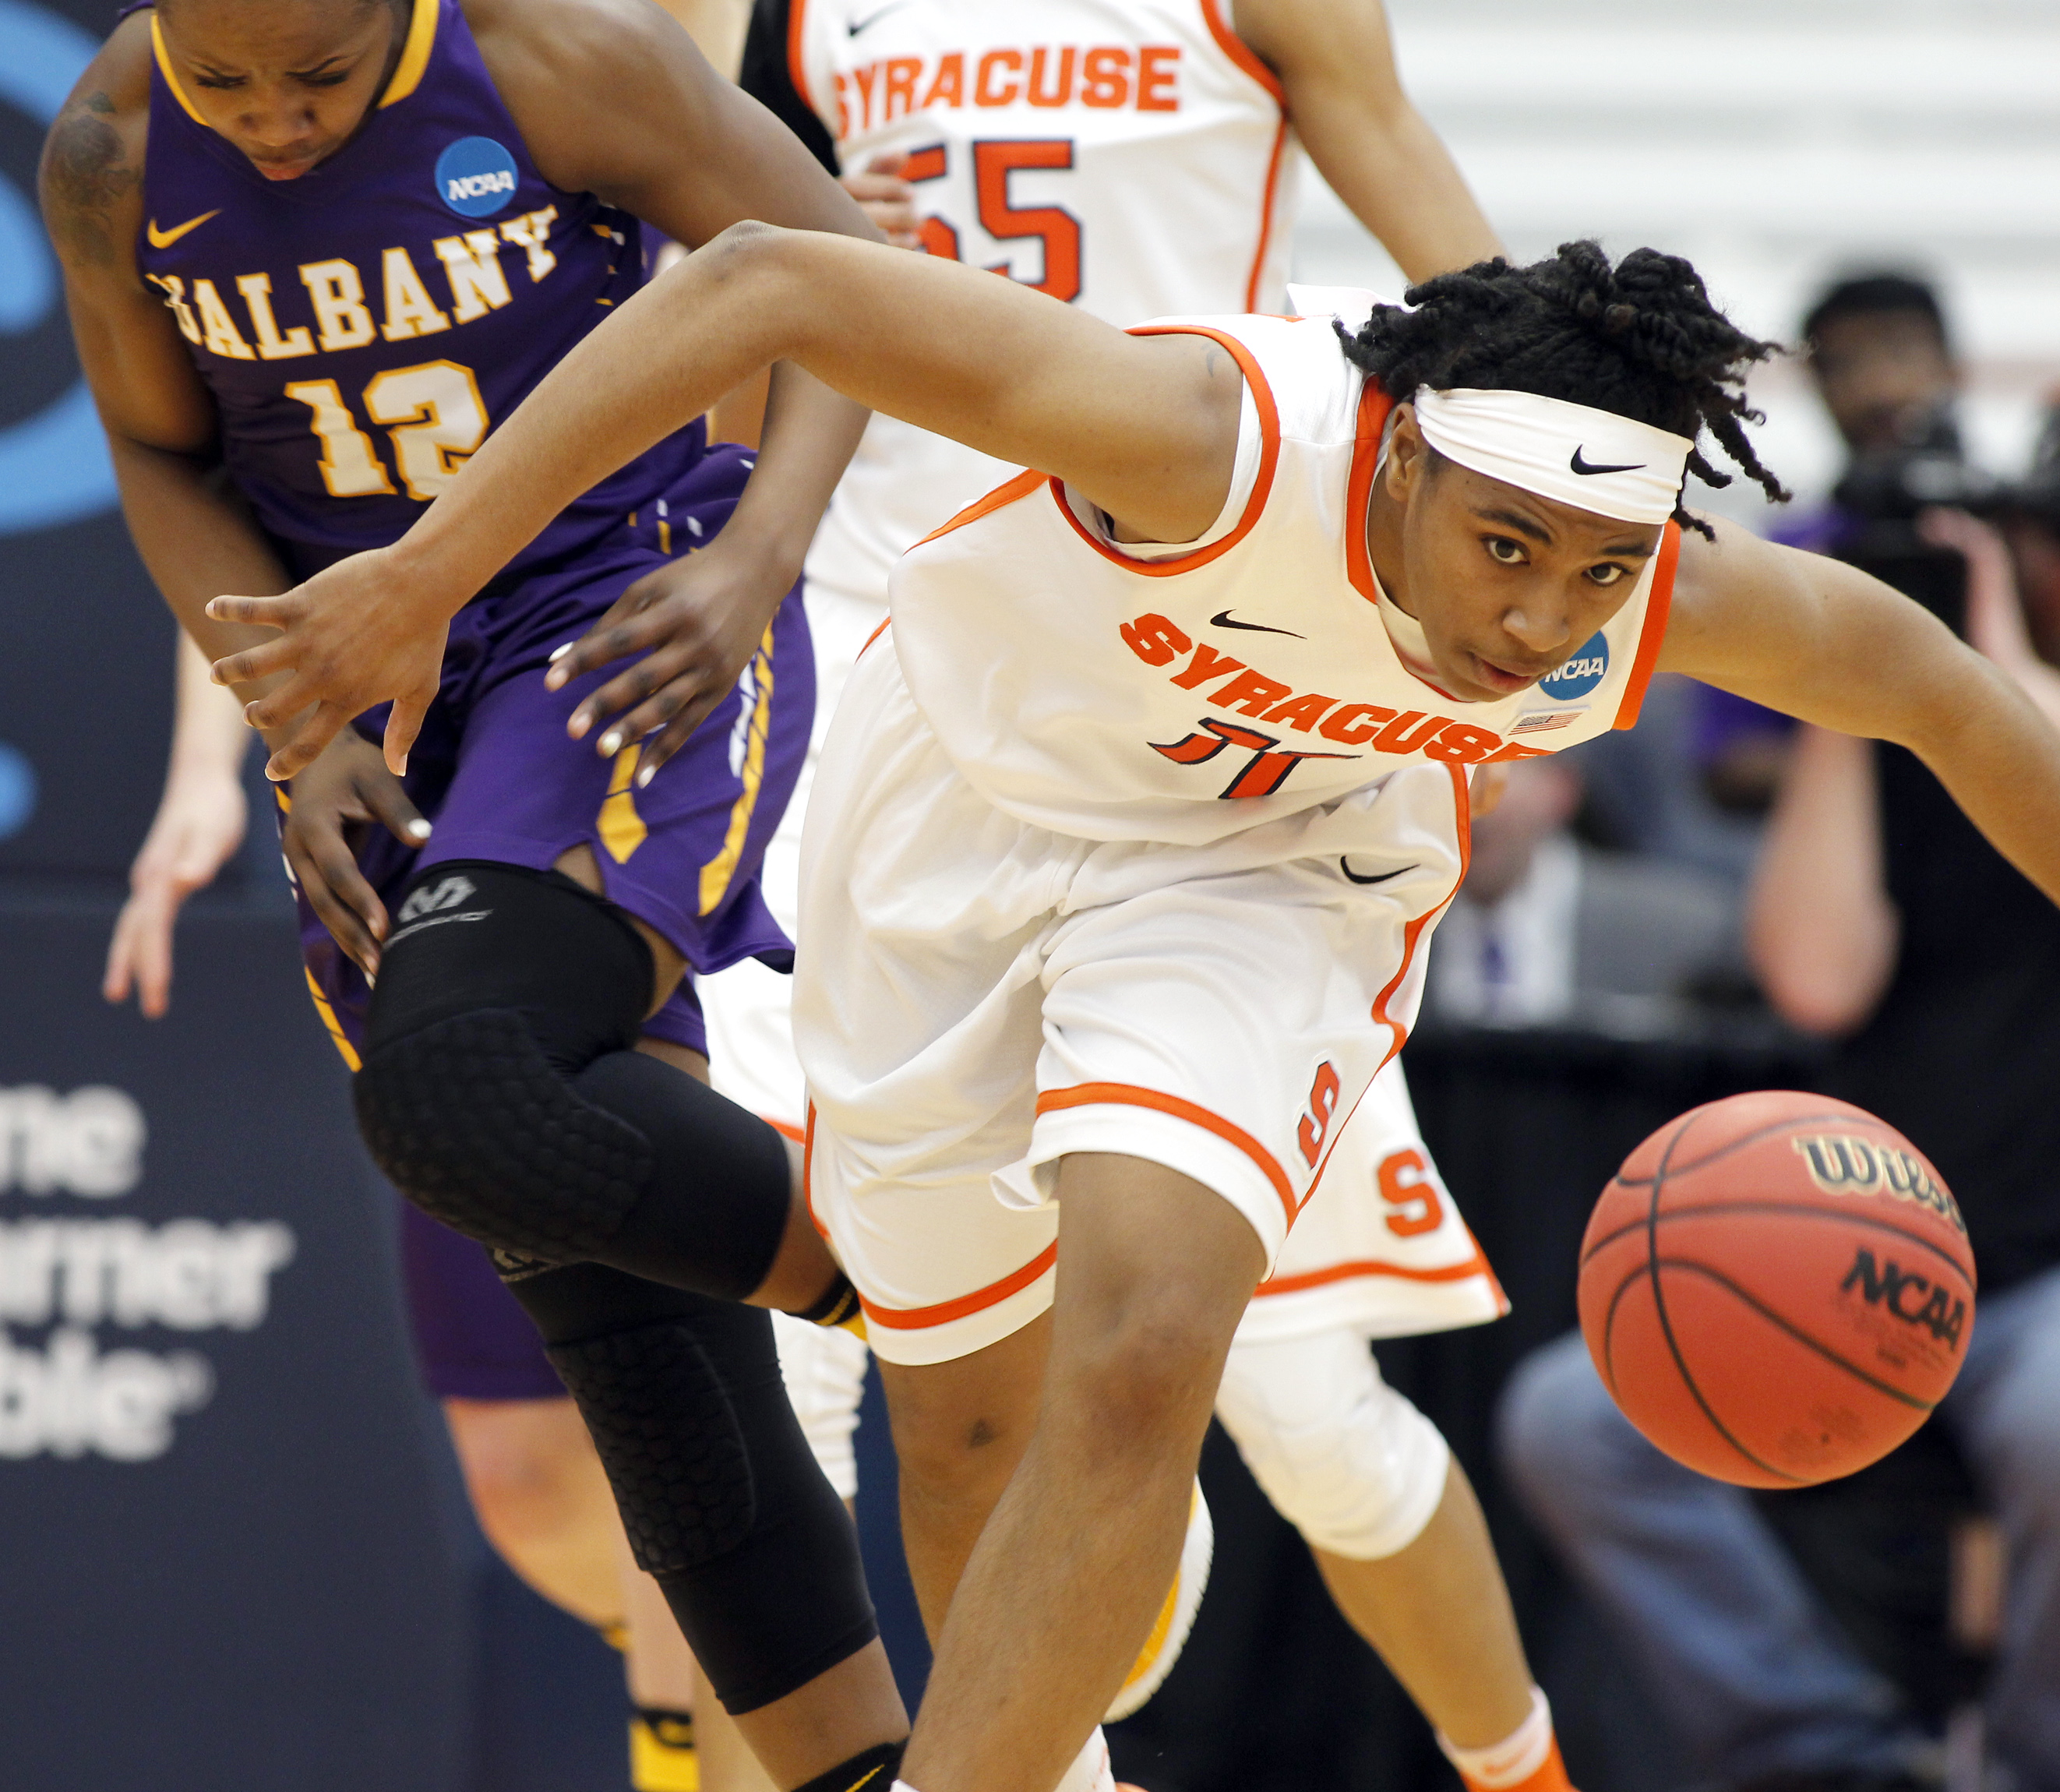 Syracuses Cornelia Fondren, right, dives for the ball past Albanys Imani Tate, left, in the first quarter of a second-round womens college basketball game in the NCAA Tournament in Syracuse, N.Y., Sunday, March 20, 2016. (AP Photo/Nick Lisi)